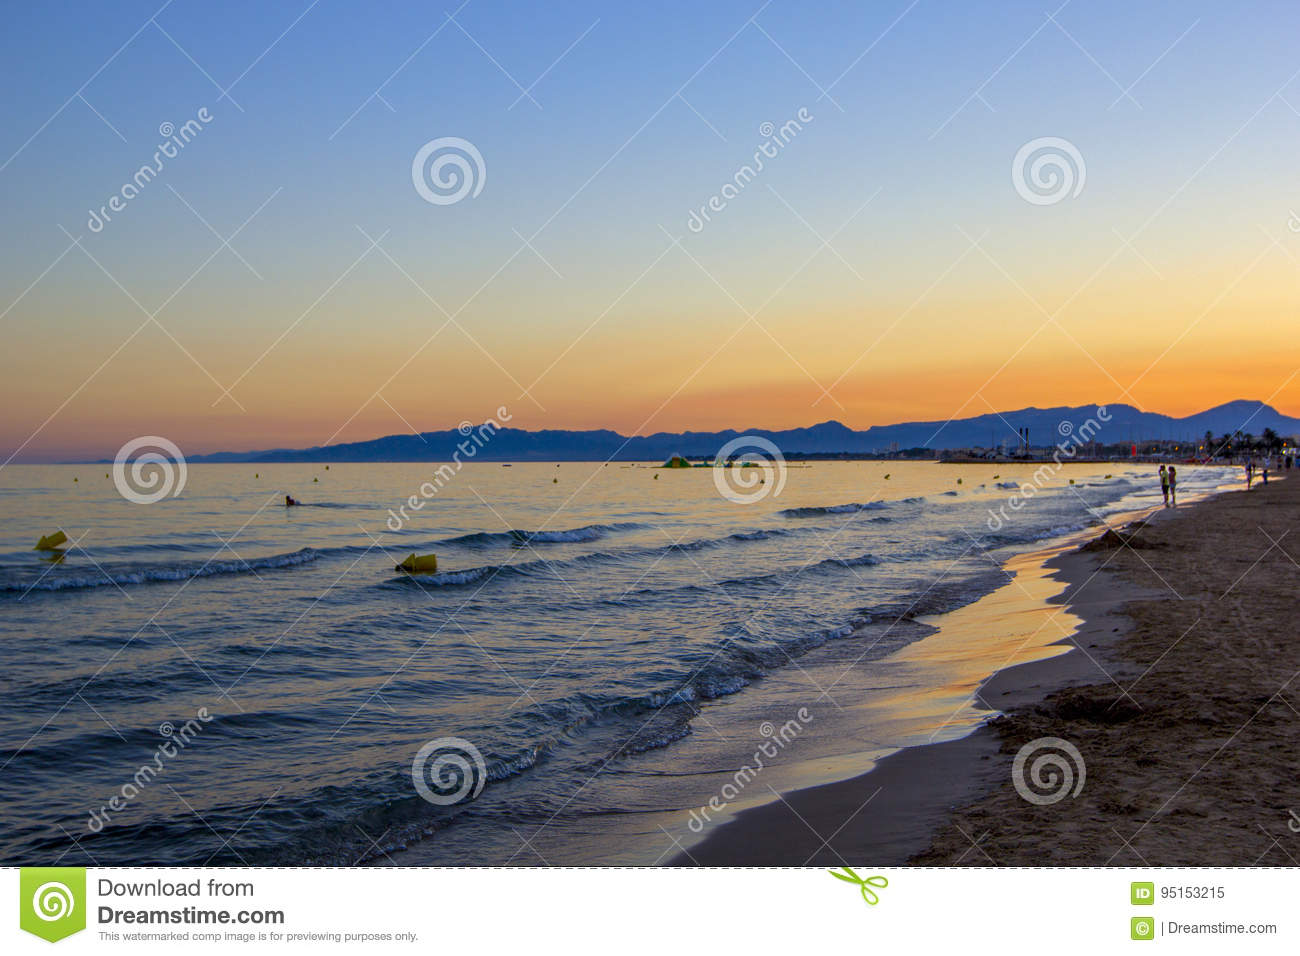 Scenic Colorful Sunset At The Sea Coast Good For Wallpaper Or Background Image Costa Darado Spain